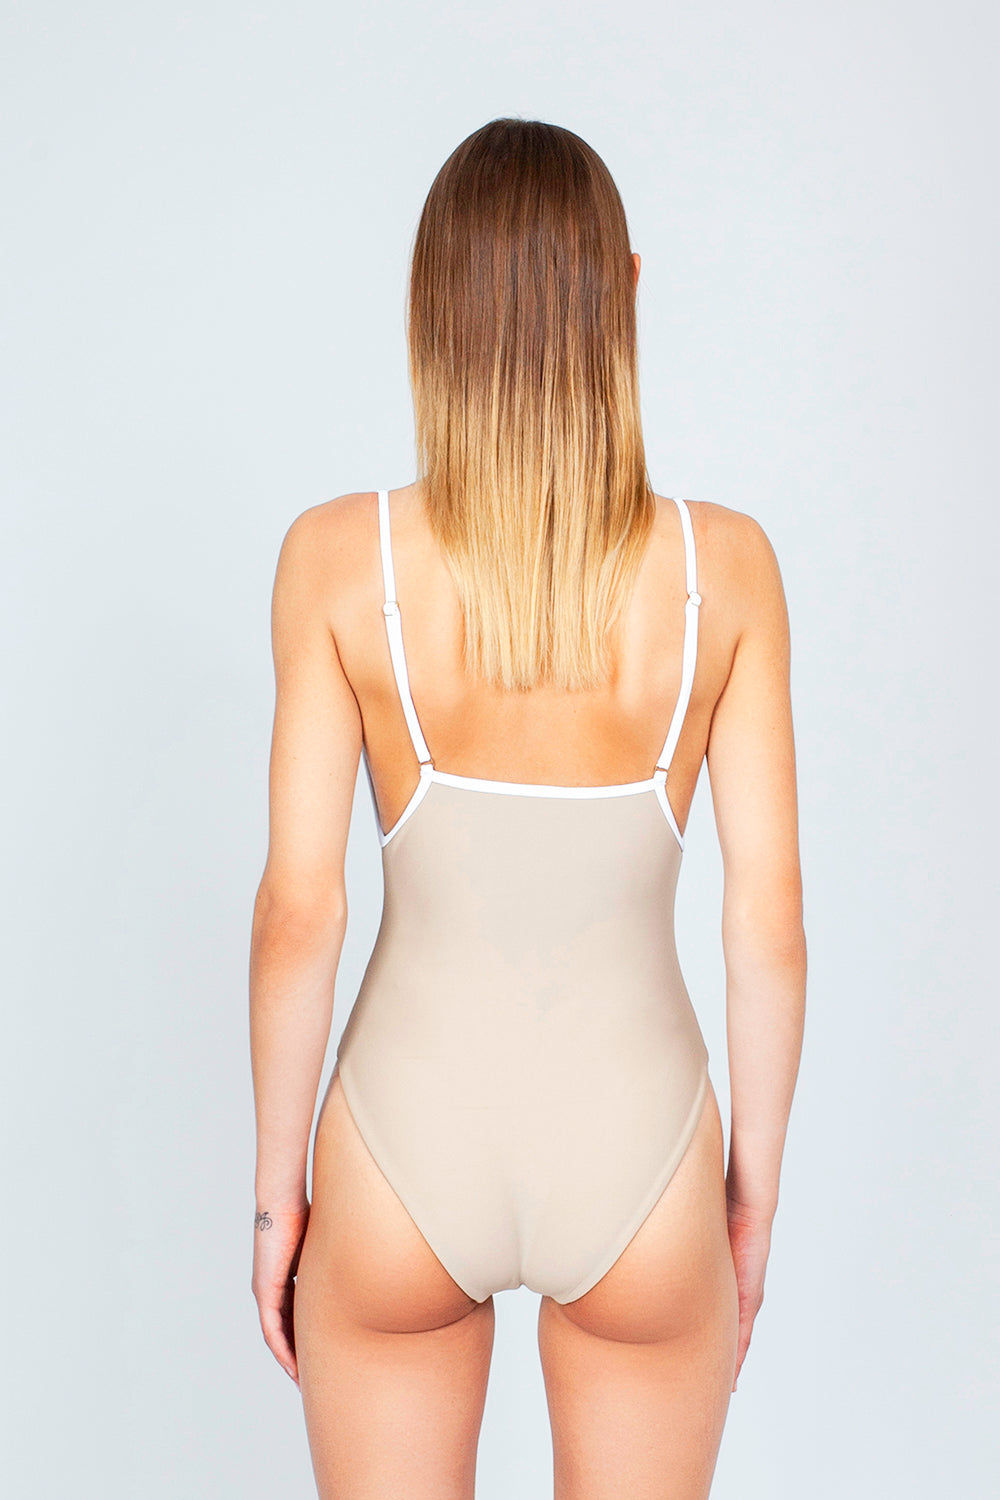 THE ONES WHO Margot High-Cut One Piece Swimsuit - Taupe Tan/White One Piece | Taupe Tan/White| The Ones Who Margot High Cut One Piece Swimsuit - Taupe Tan/White Features:   Square neckline  Adjustable shoulder straps High cut leg  Cheeky - moderate coverage  Made in LA  Fabric: 80% Nylon 20% Elastane Back View